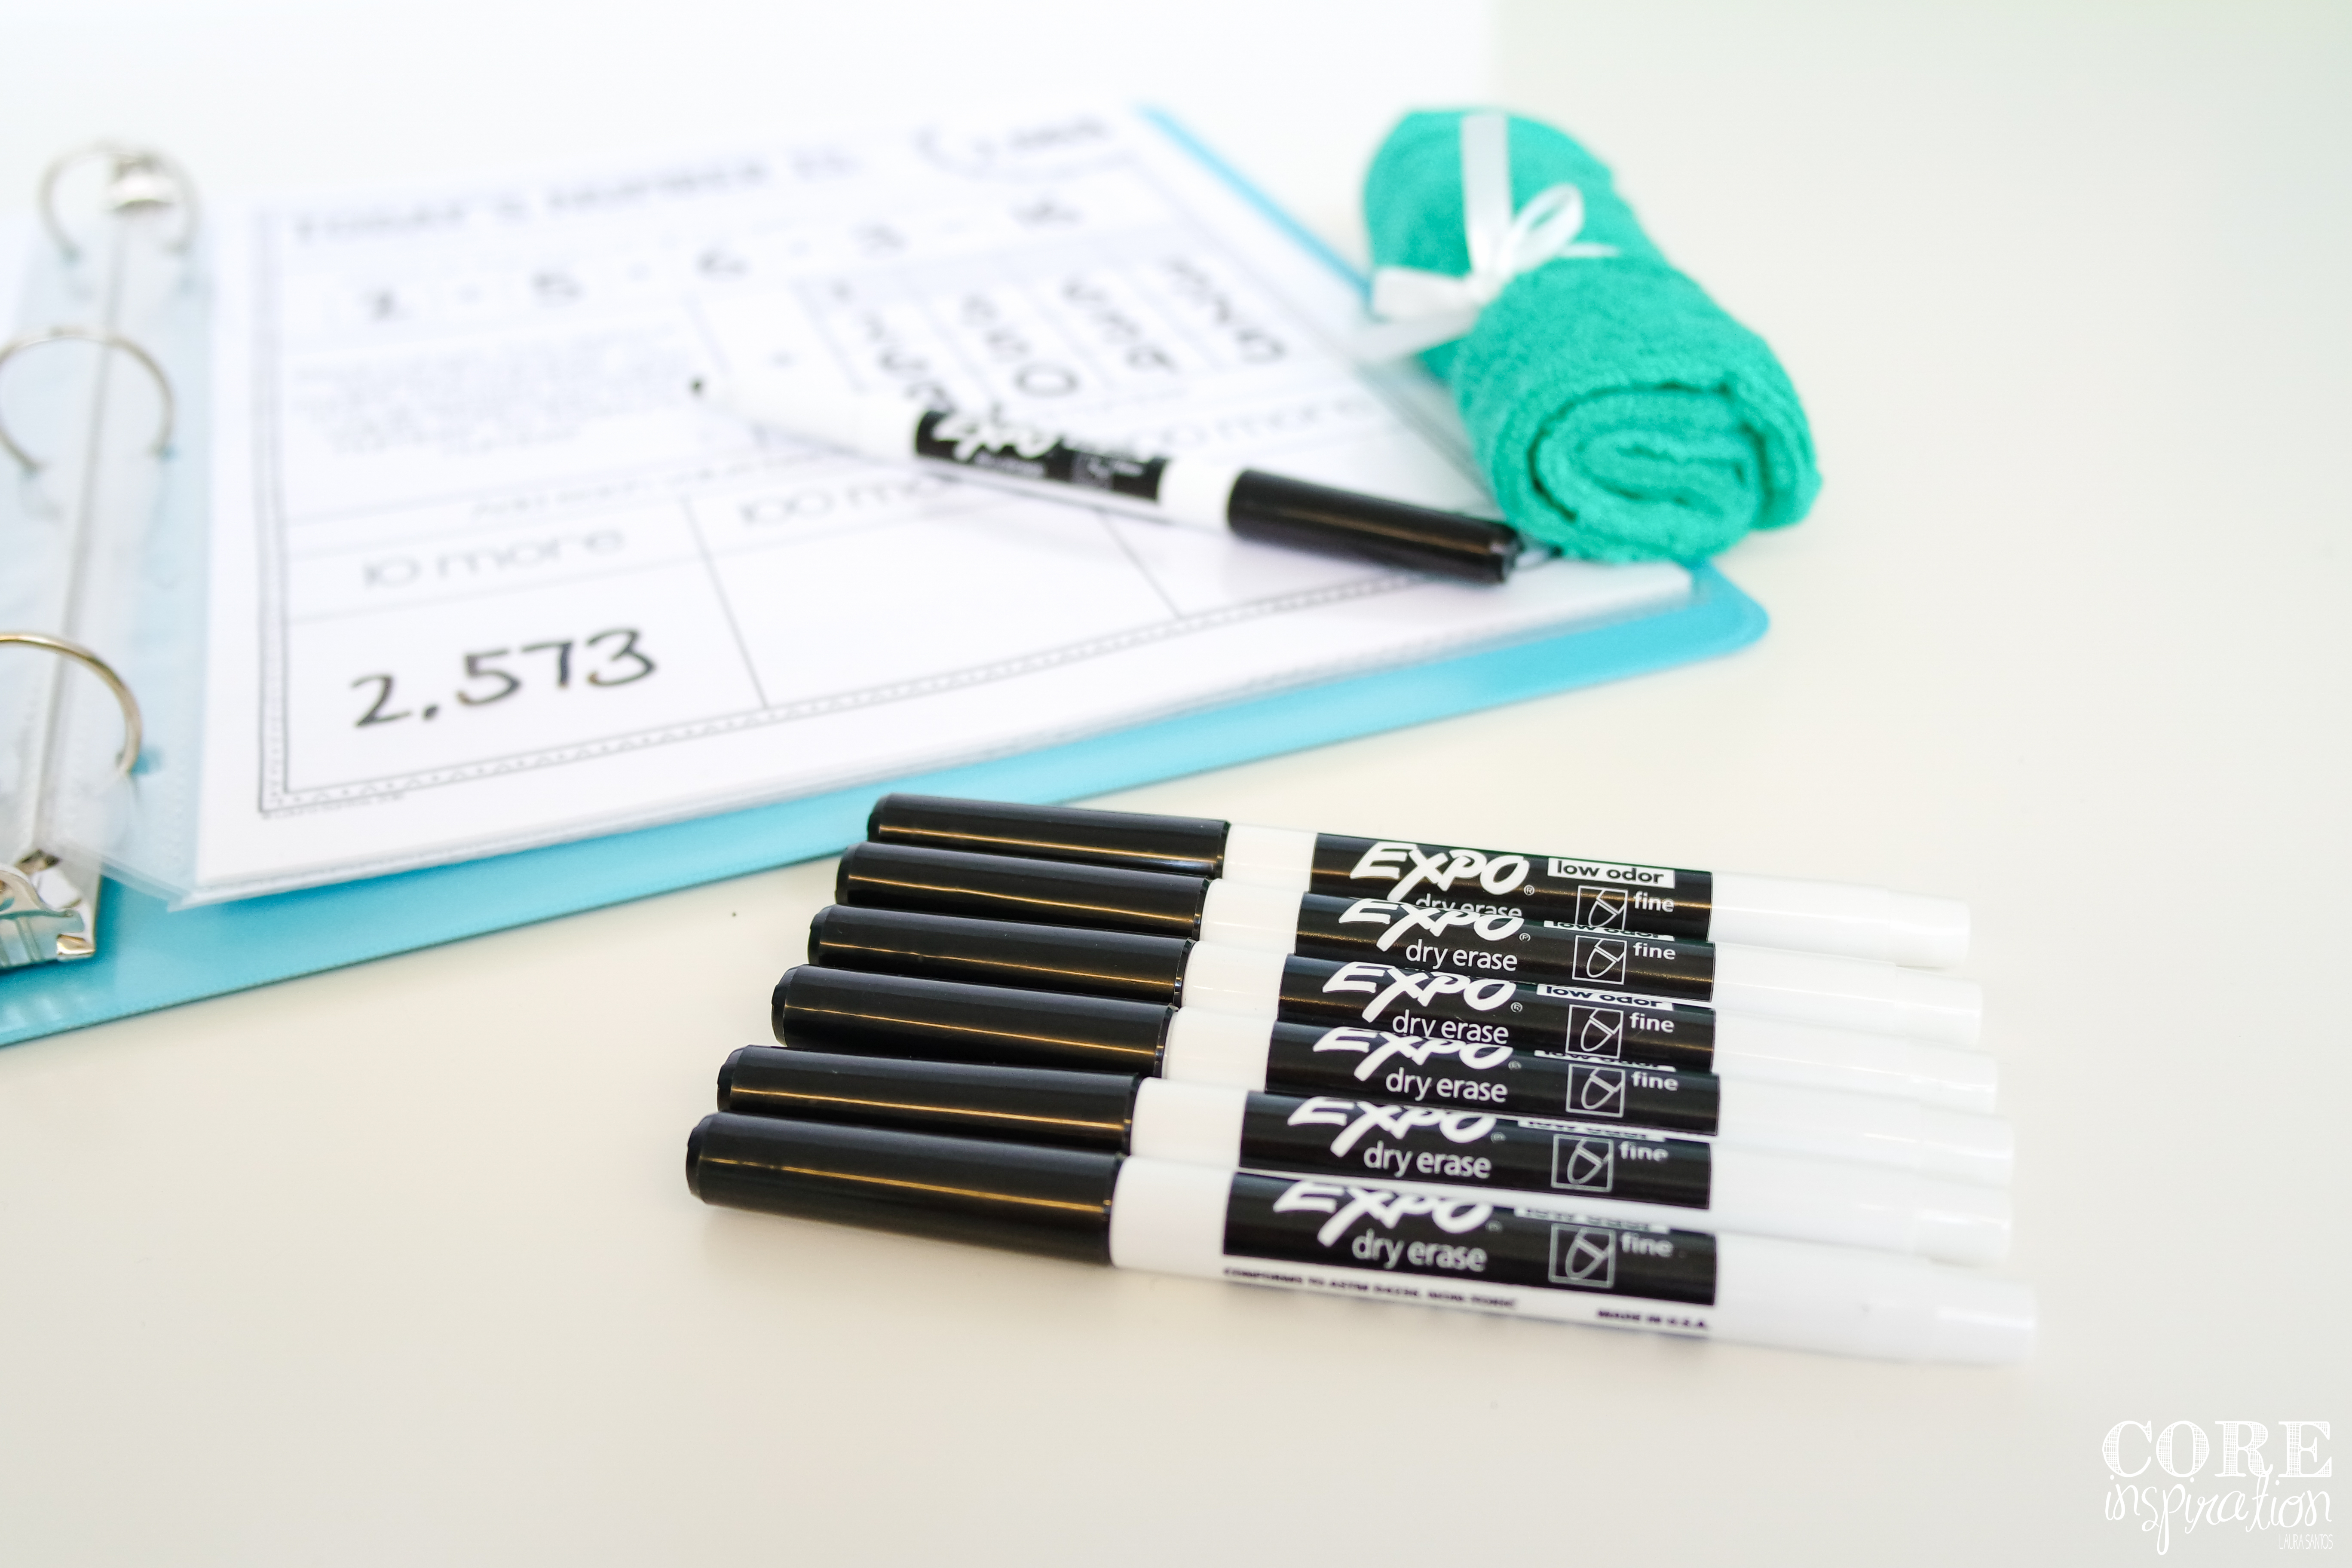 Using thin tip expo whiteboard markers makes it easy for students to record and erase the answers in their reusable binder.